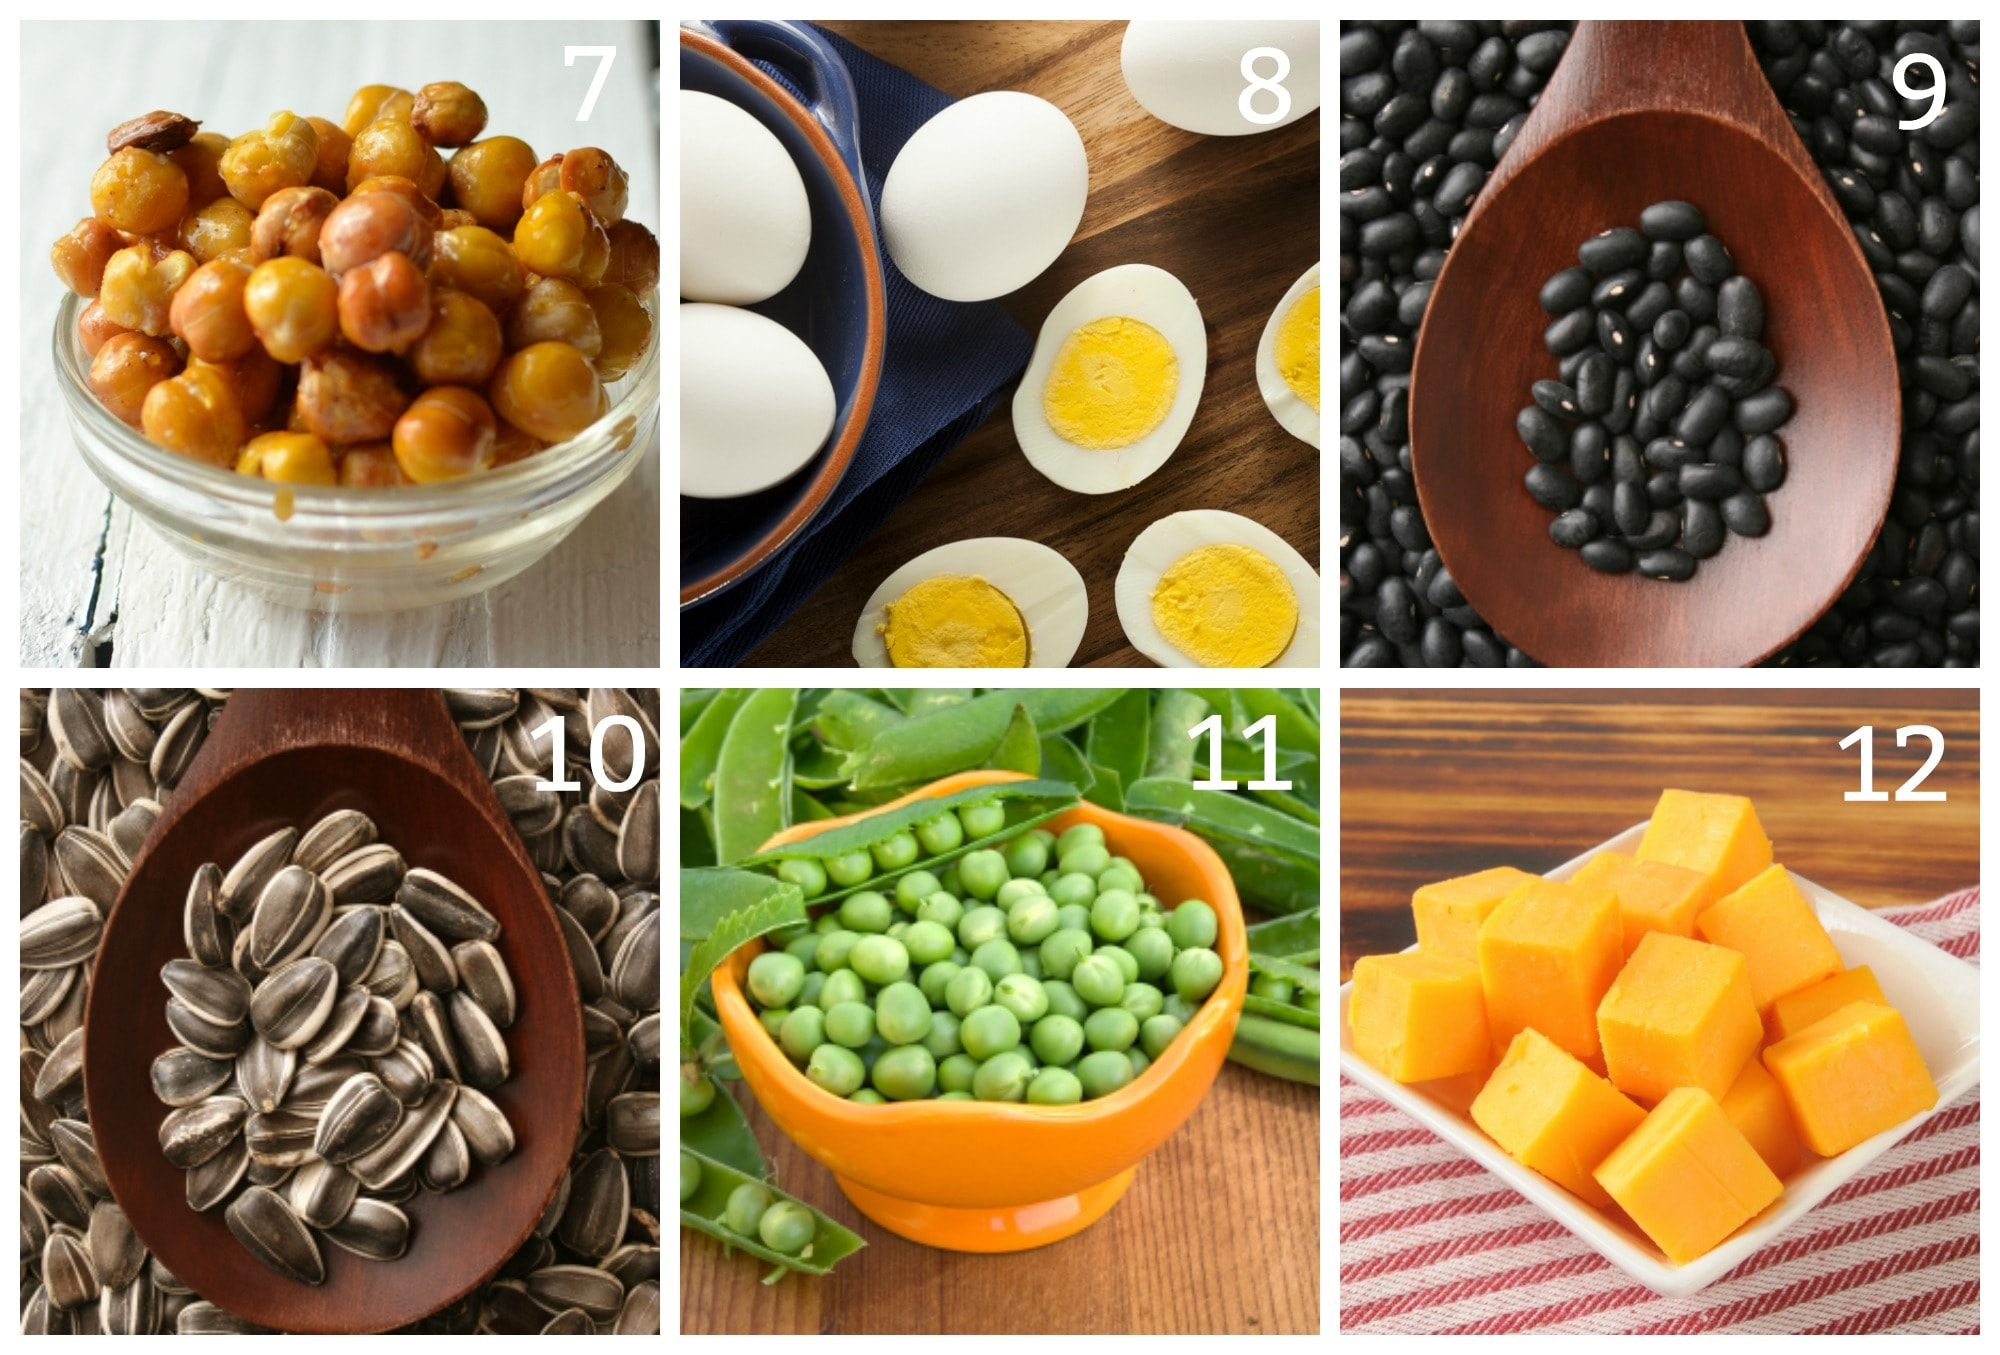 Watch 6 Protein Sources That Aren't Meat video